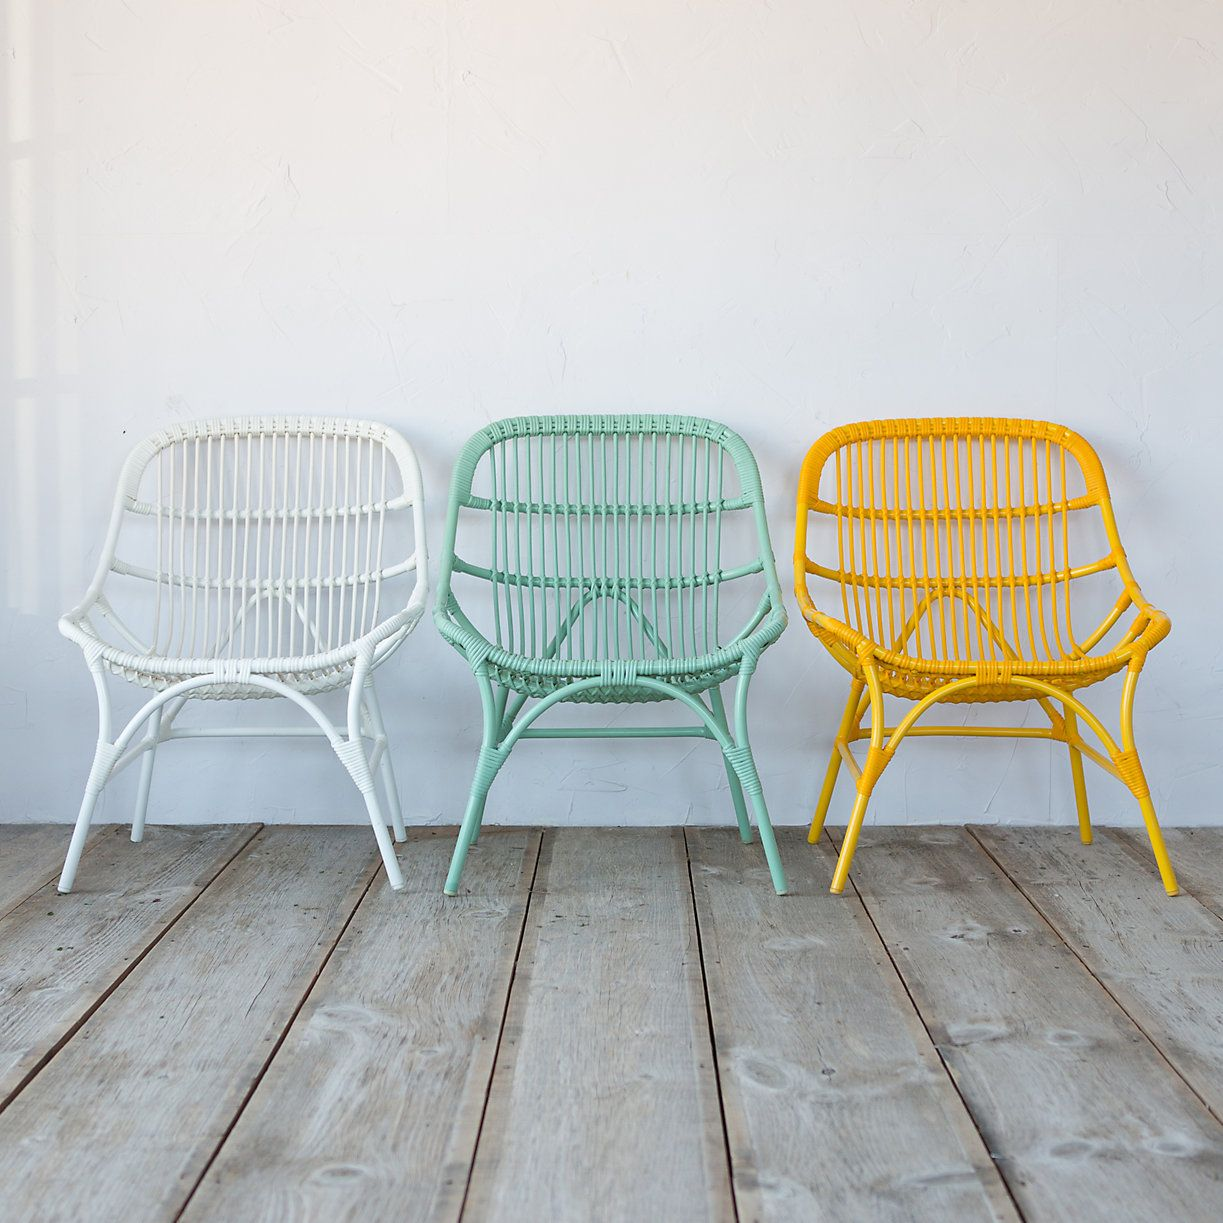 Open Weave All Weather Wicker Side Chair In Outdoor Living Outdoor Seating  At Terrain Part 76